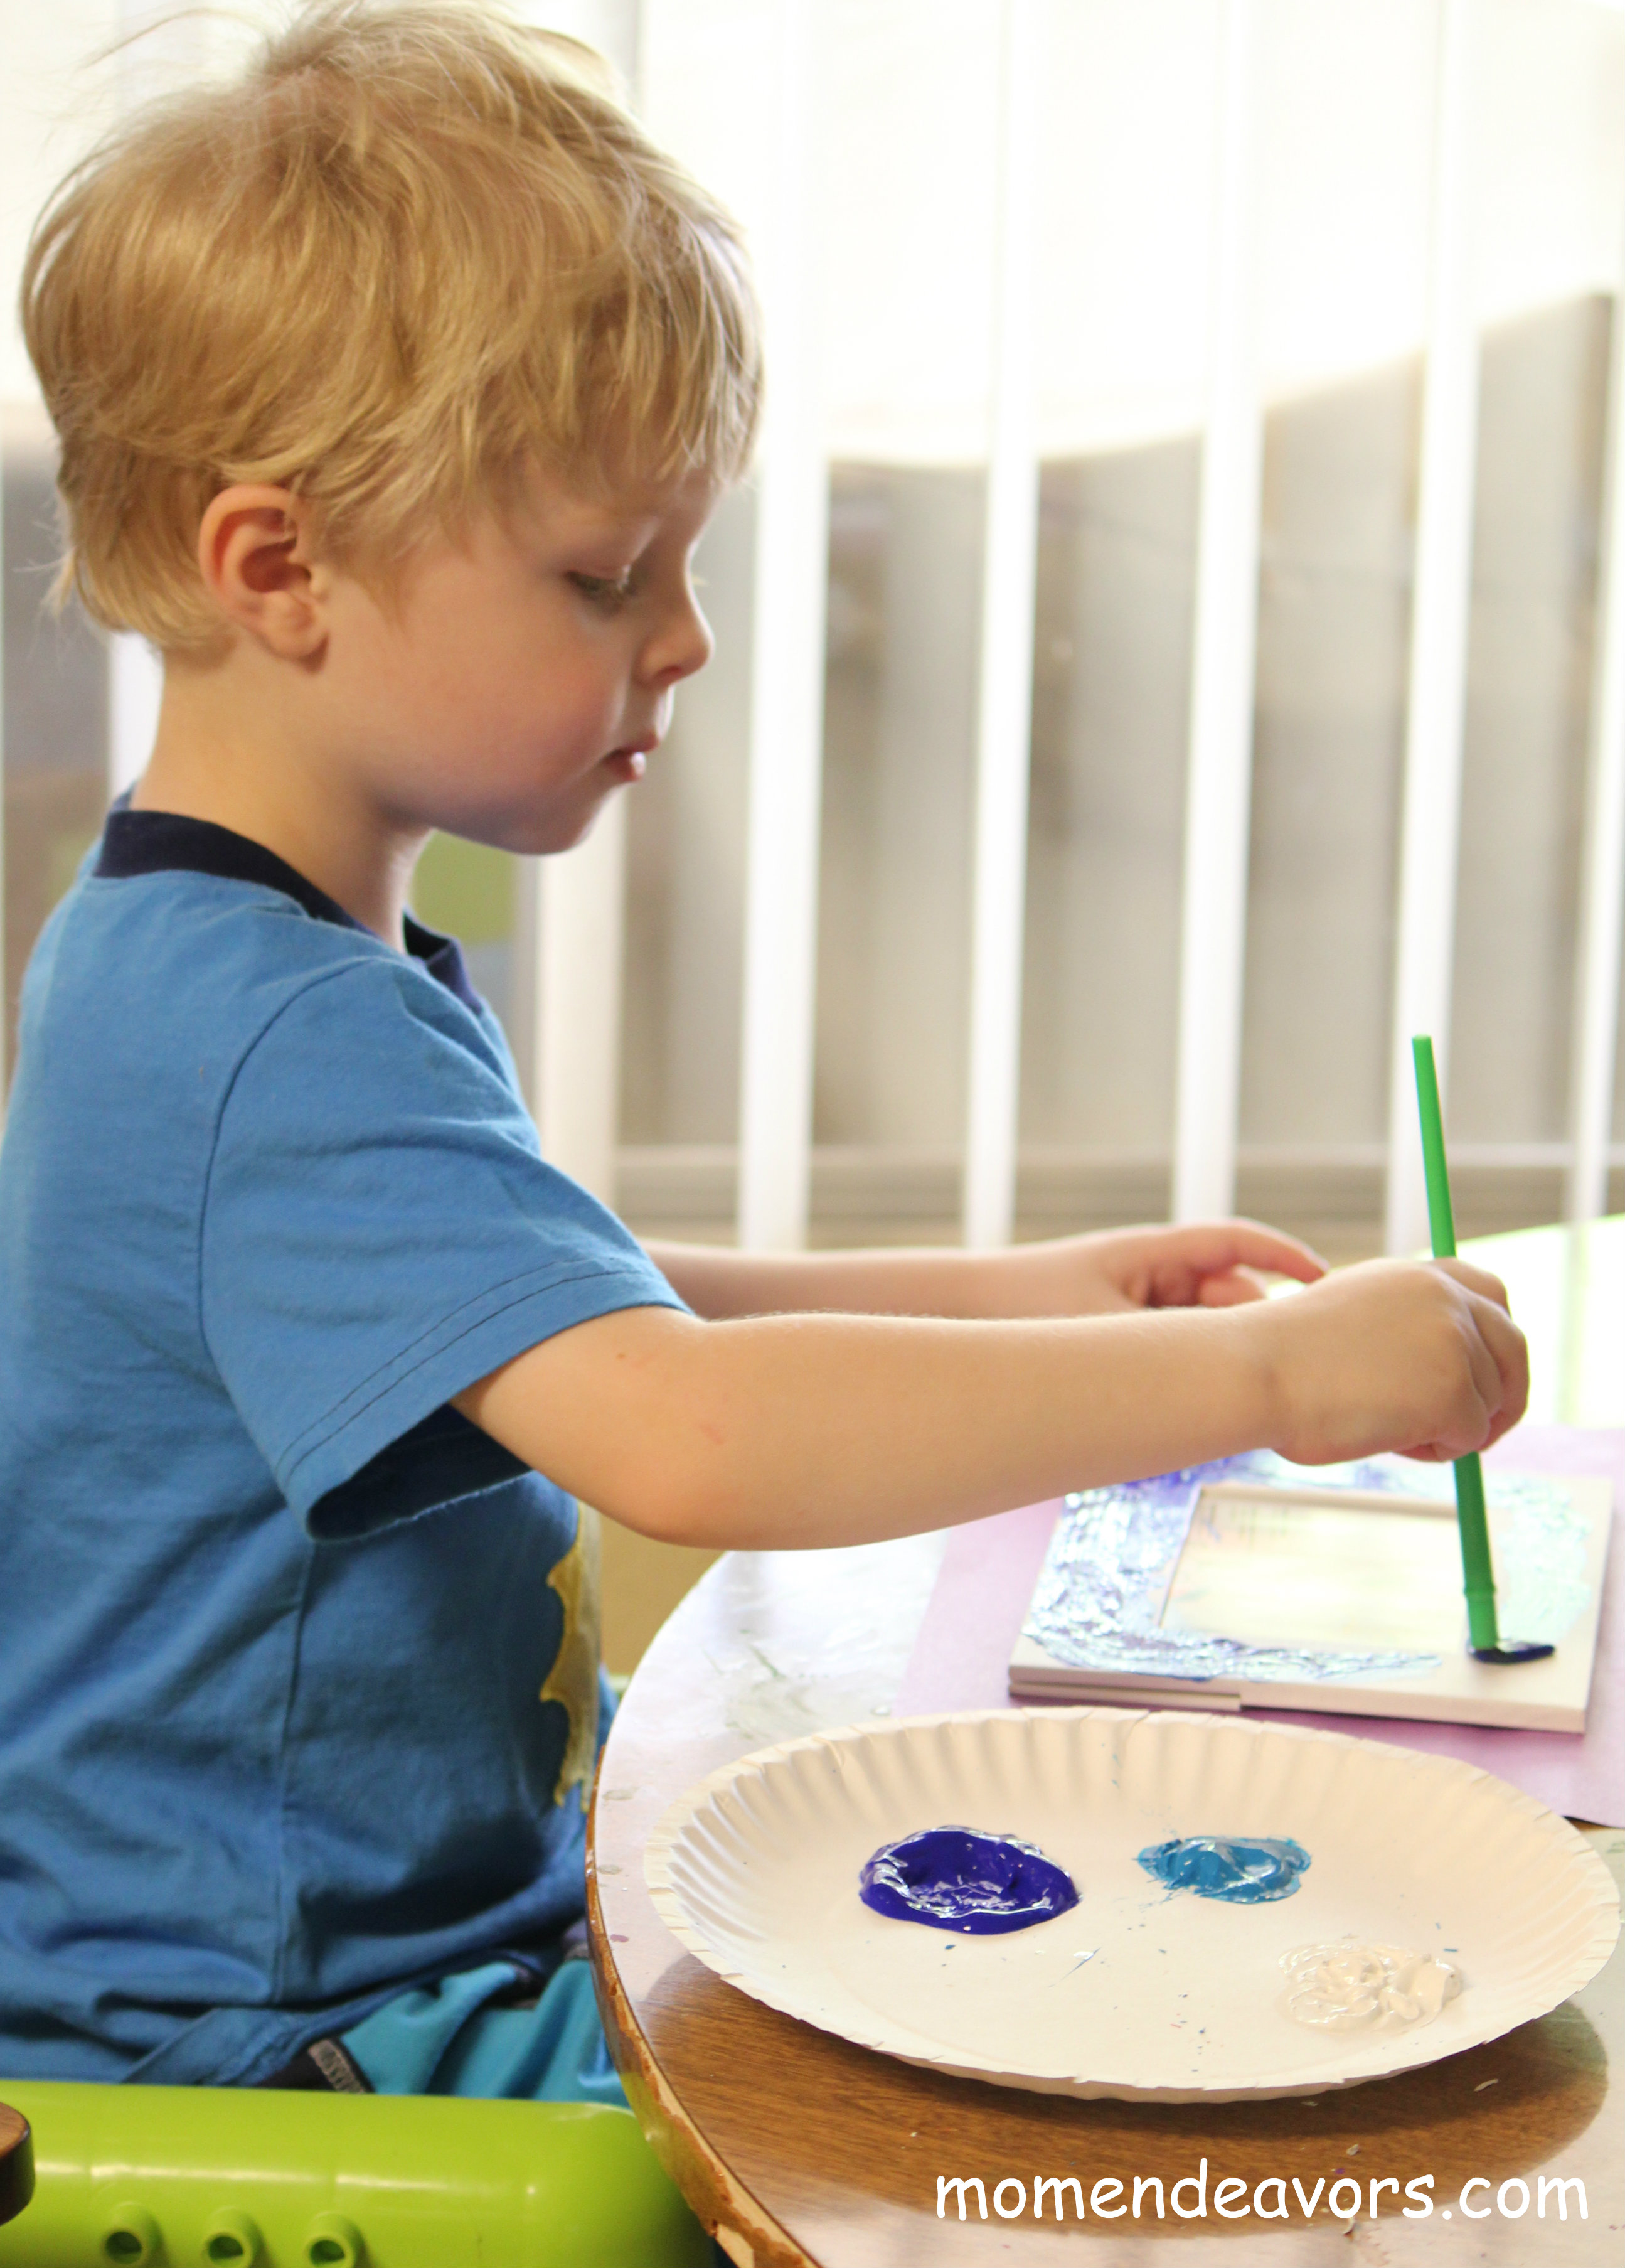 Easy mothers day crafts for kids to make perfect for grandmas to jeuxipadfo Gallery